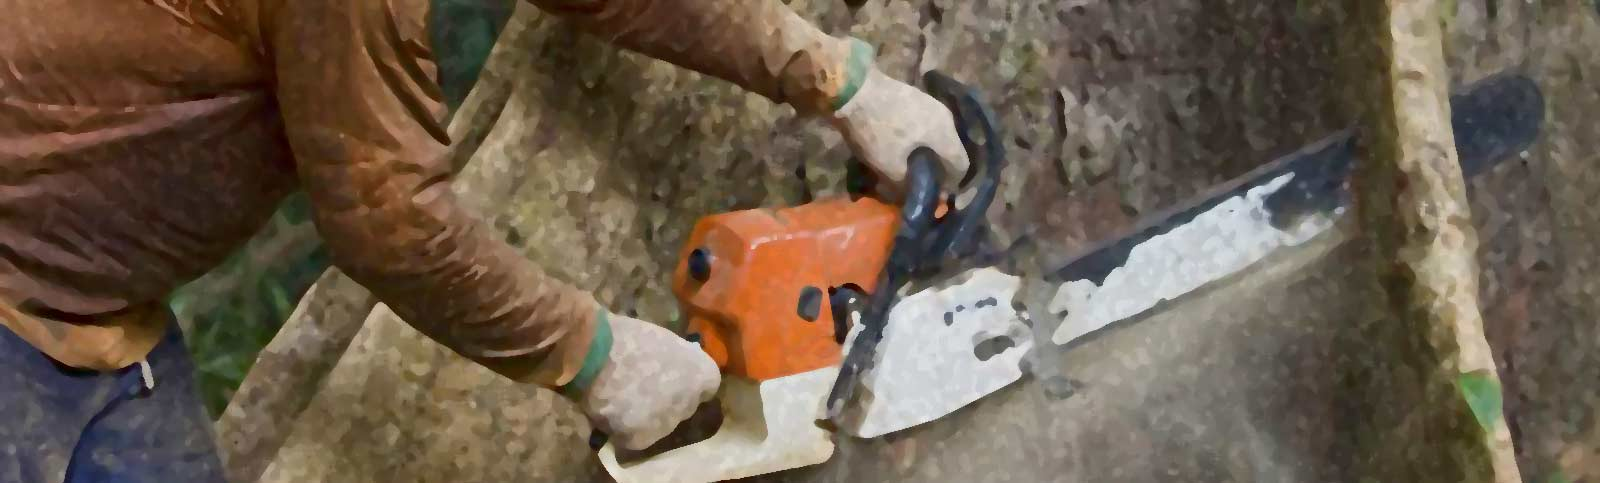 Before You Hire a Tree Surgeon, Here is a Primer on Tree Surgery